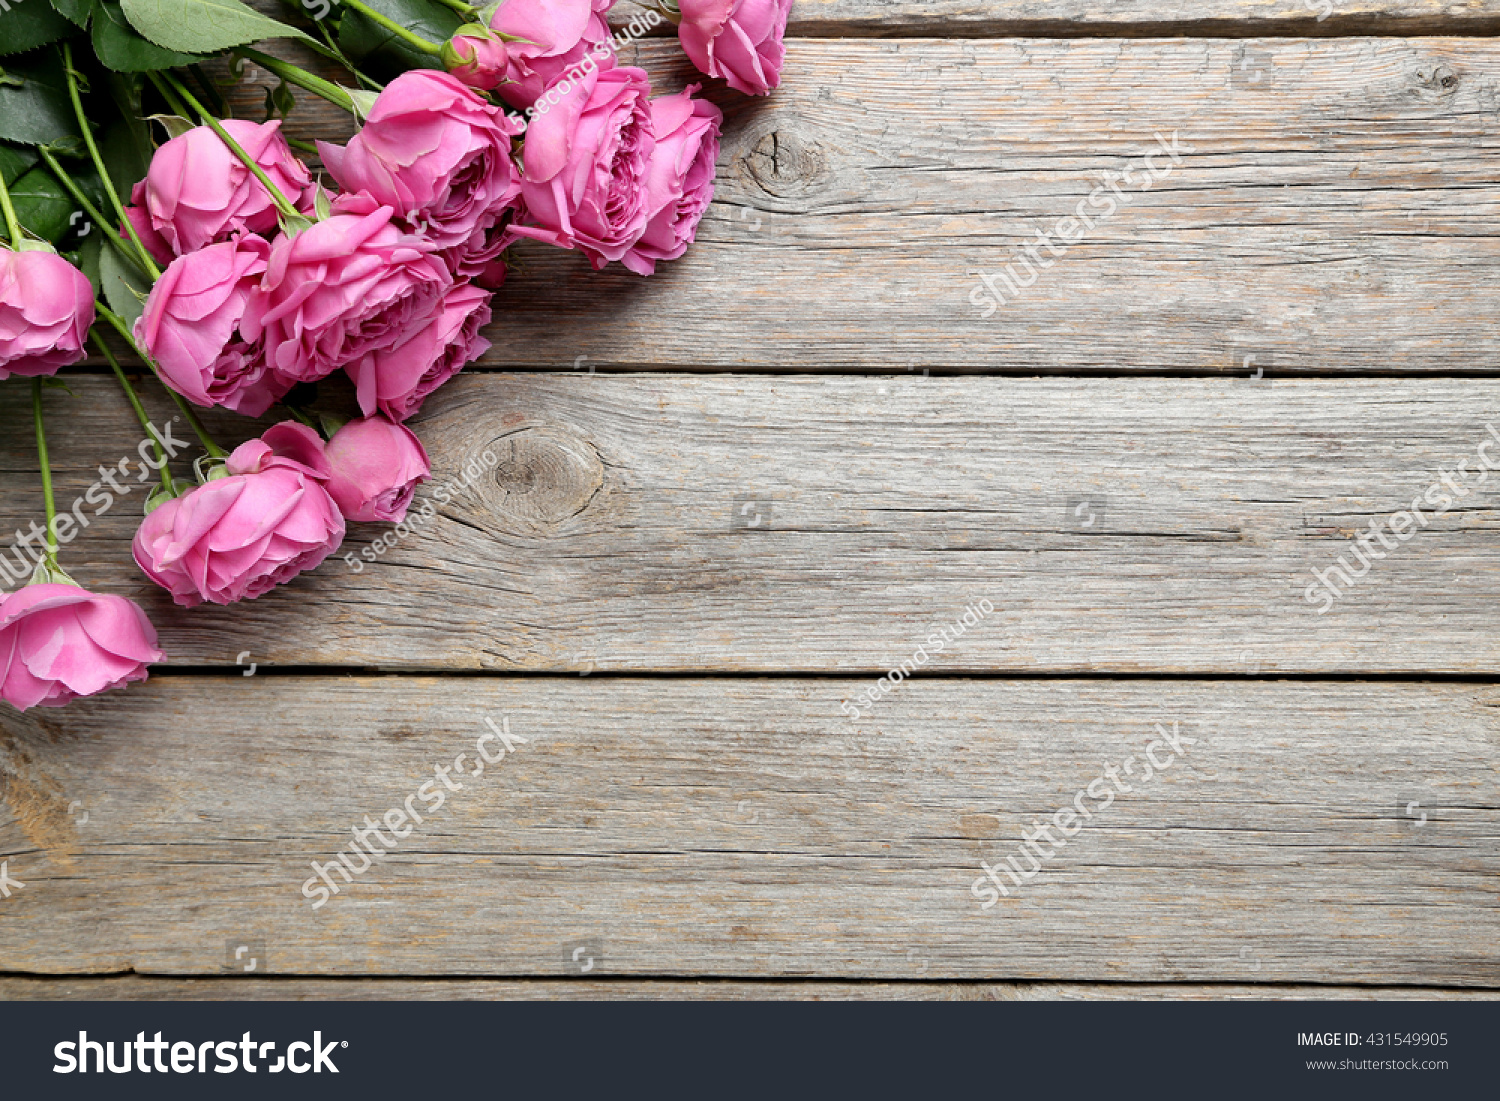 Beautiful Pink Roses On Grey Wooden Stock Photo 431549905